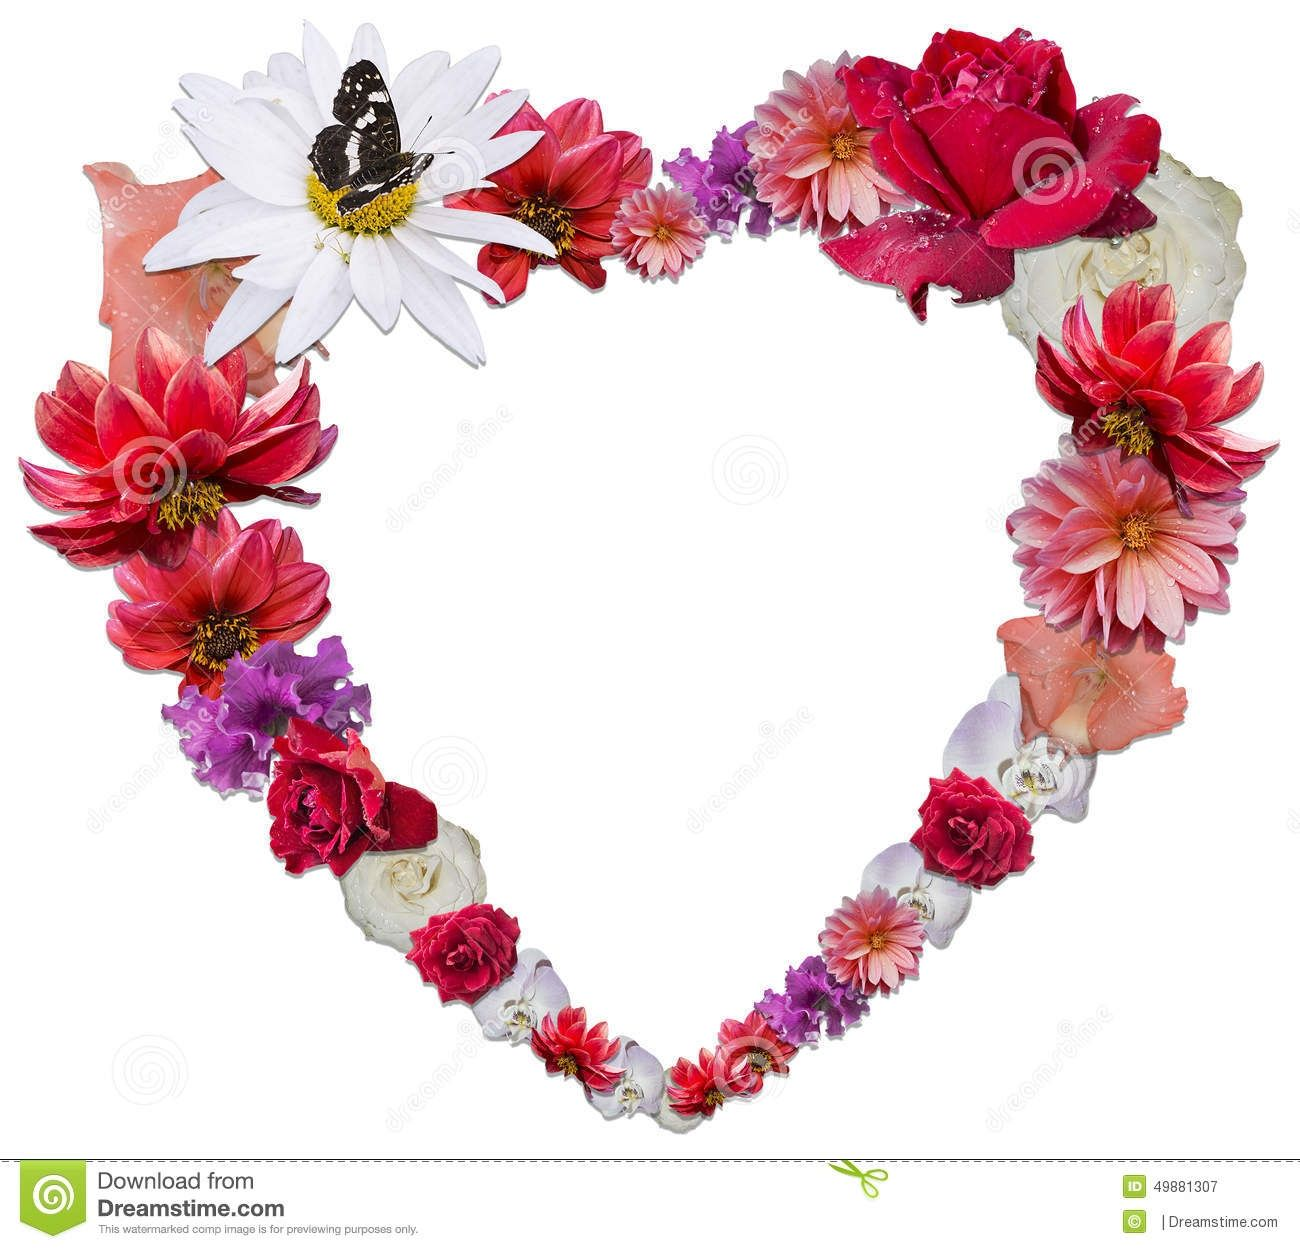 Hd Images Of Beautiful Love Flowers Beautiful Love Flowers Images